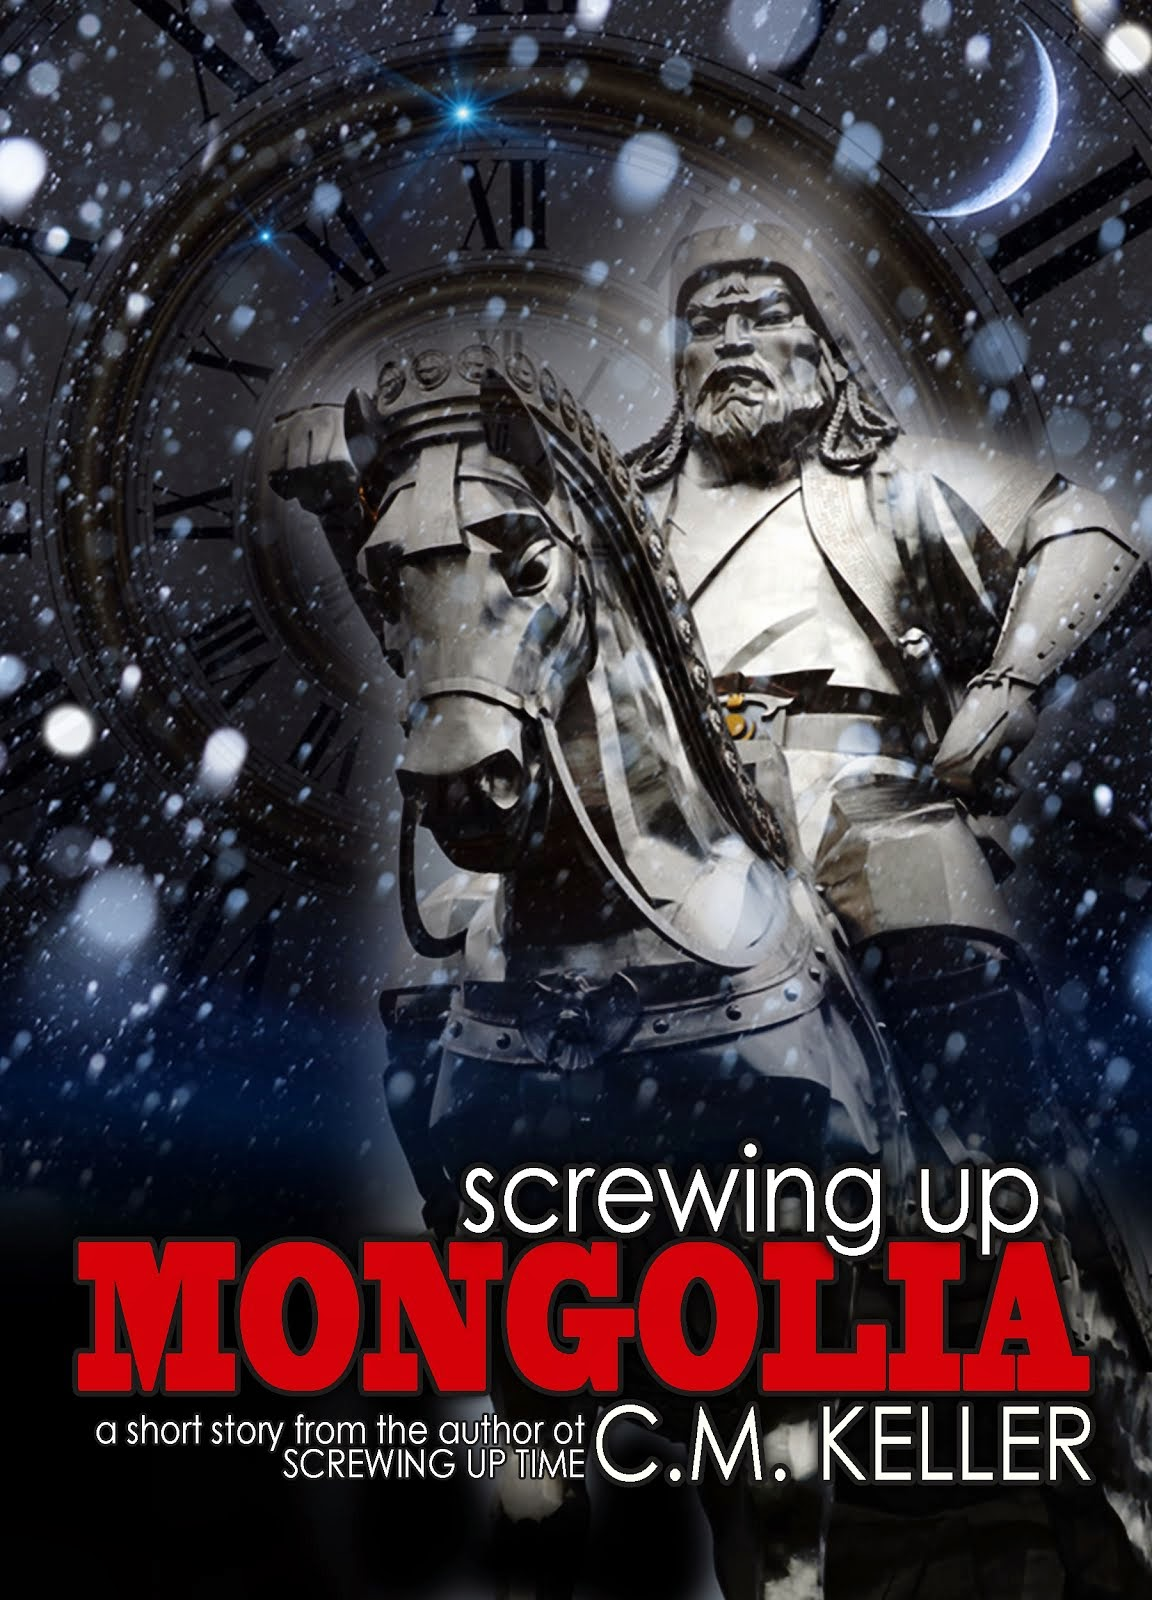 Screwing Up Mongolia